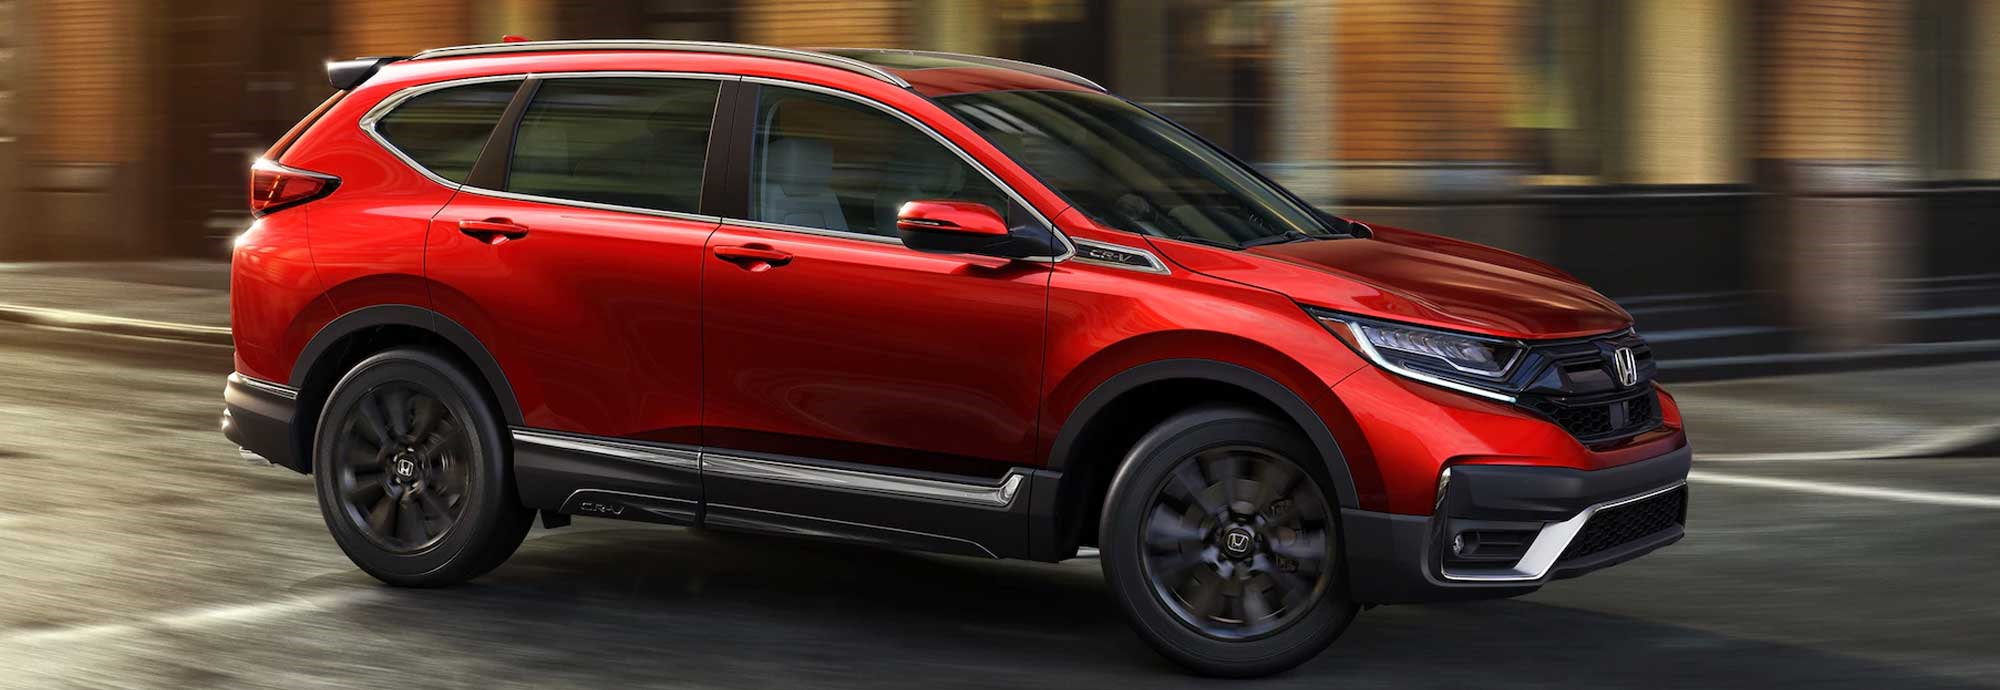 Right side view of the 2021 Honda CR-V